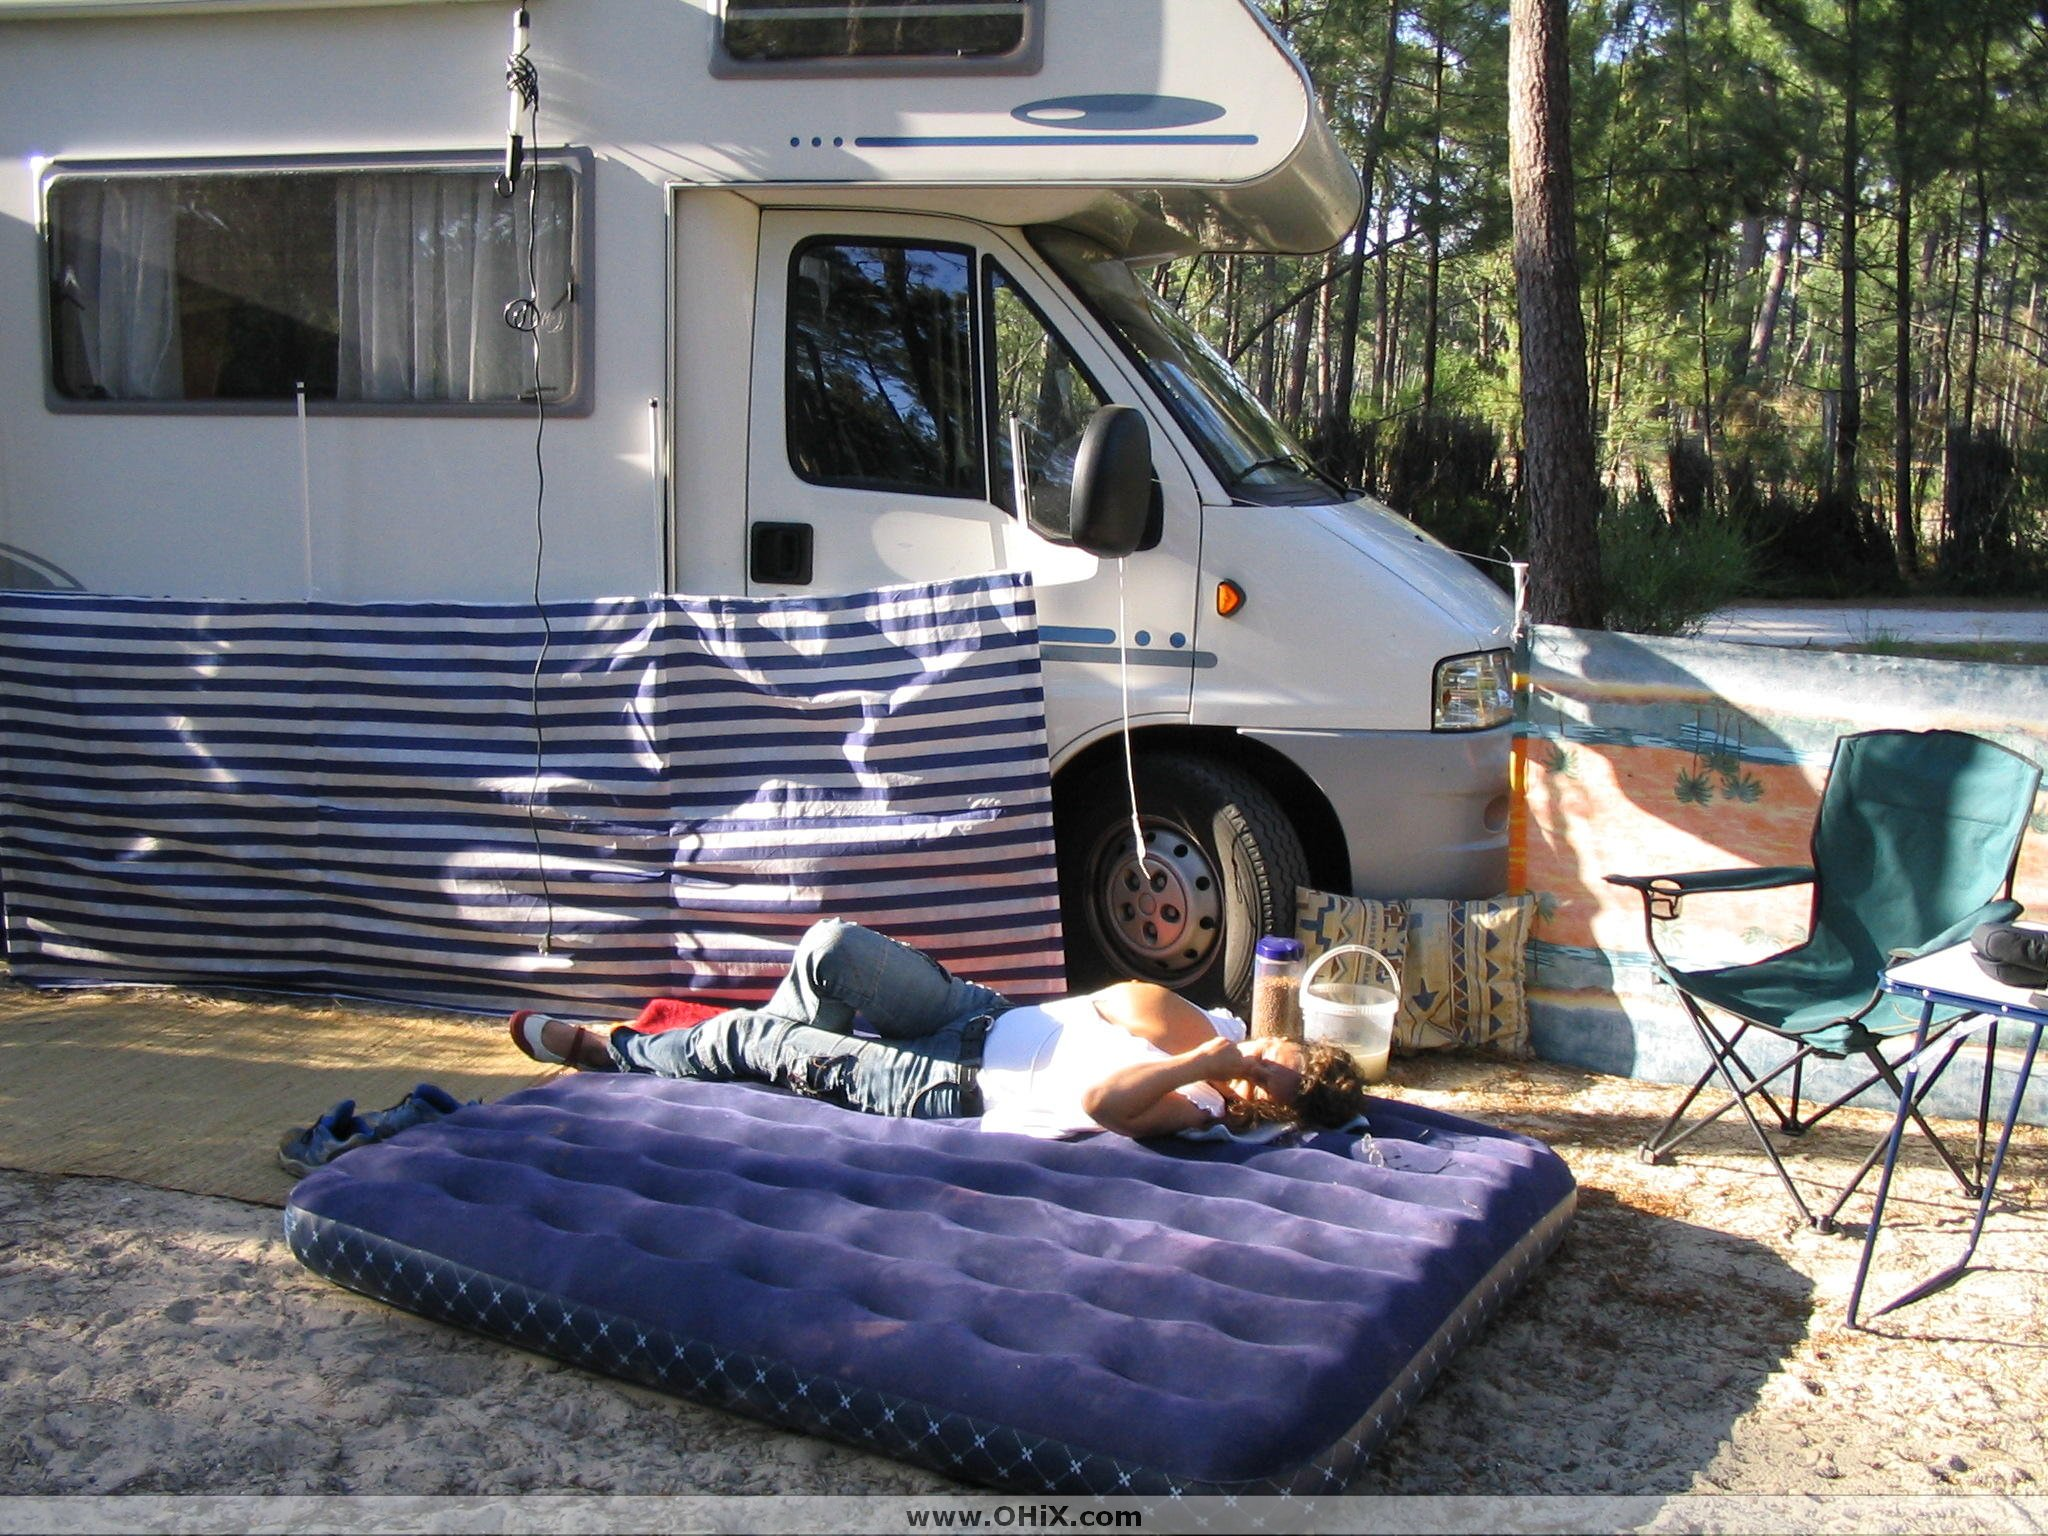 http://static.ohix.com/photos/Vacances-en-camping-car/18.jpg